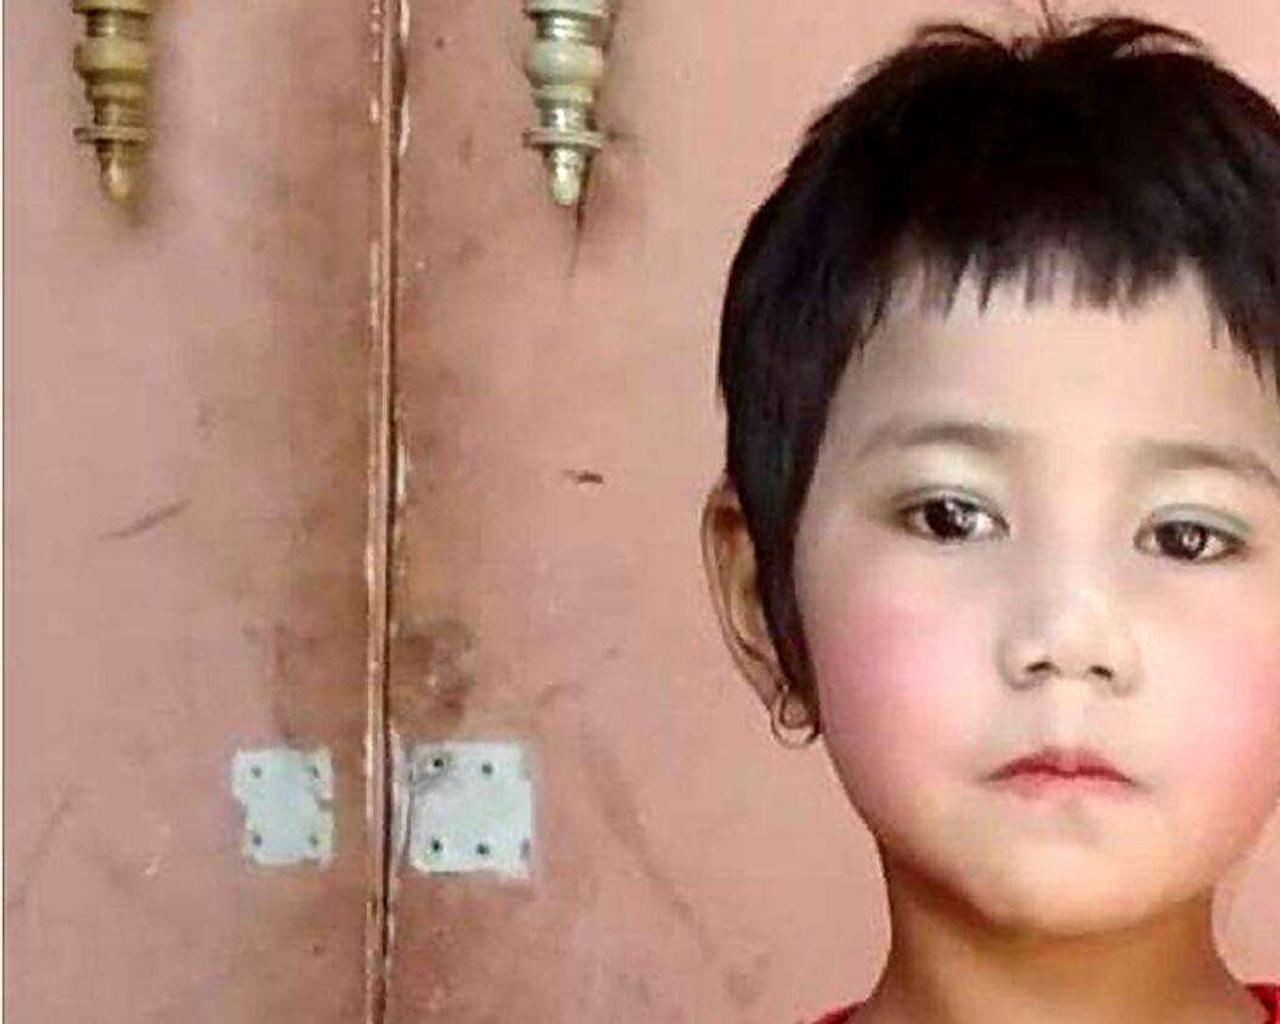 Myanmar coup: seven-year-old shot 'when he falls into his father's arms'